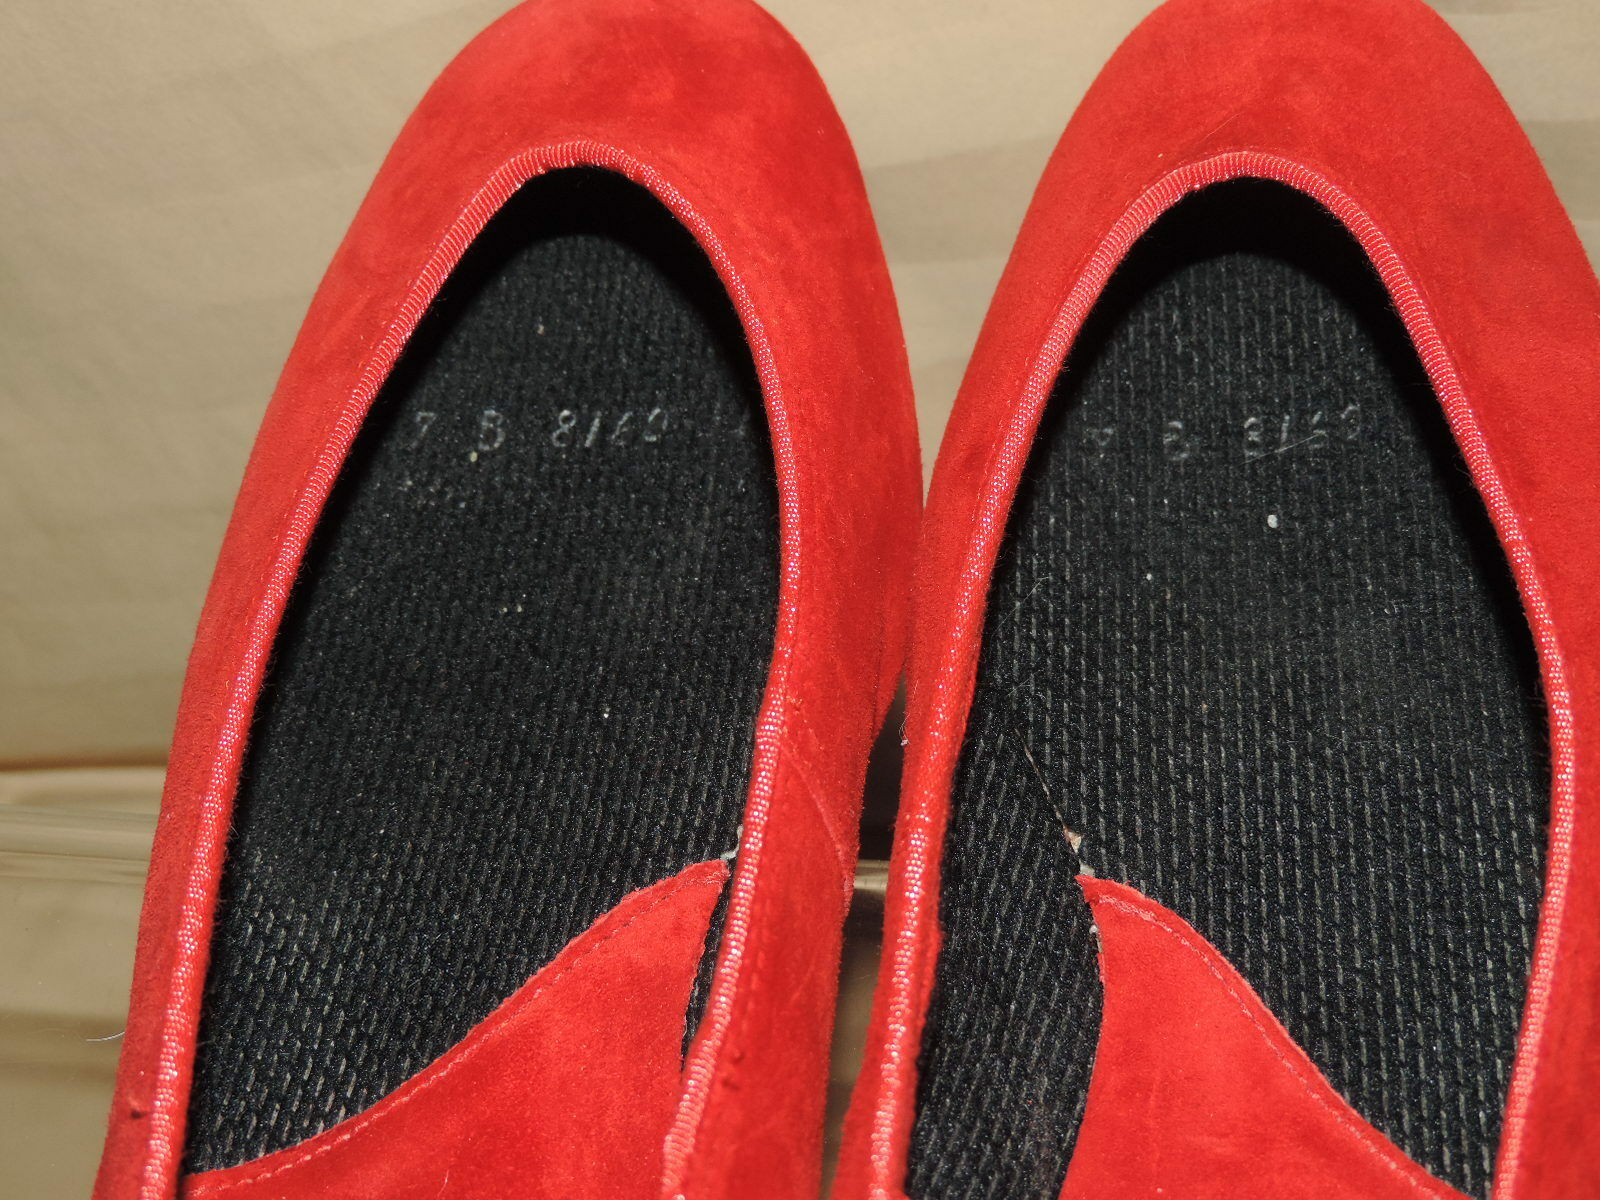 Lands End Women's 7 B Red Suede Leather Loafers Slip on Ballet Float Loafers Leather EC 2b6101